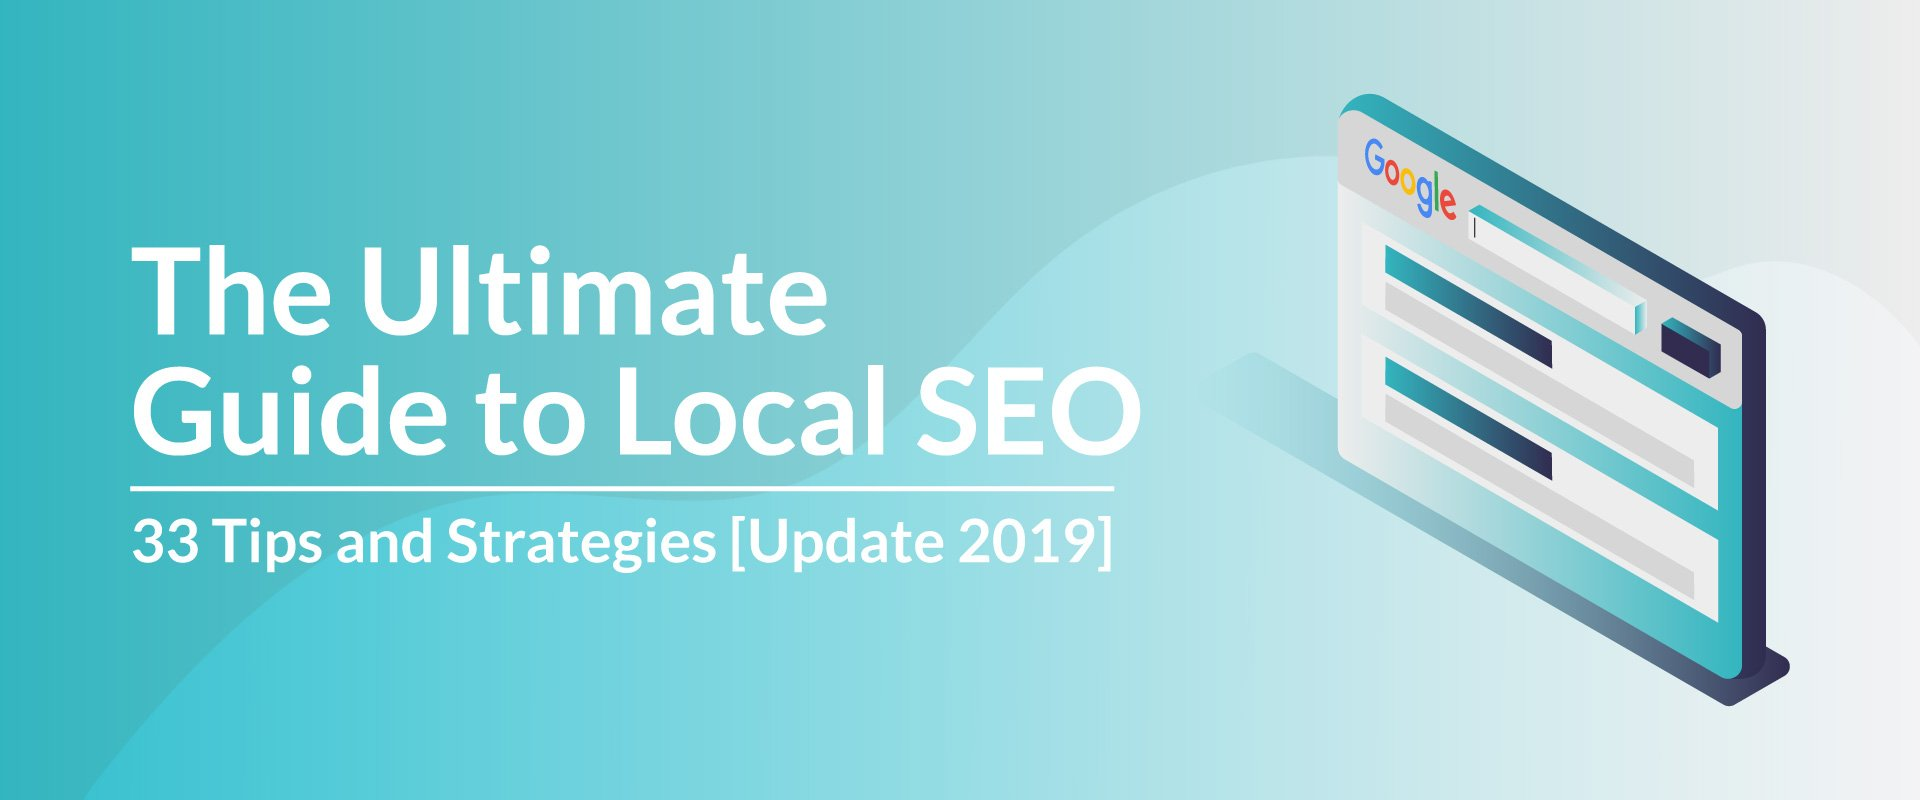 The Ultimate Guide to Local SEO: 33 Tips and Strategies [Update 2019]